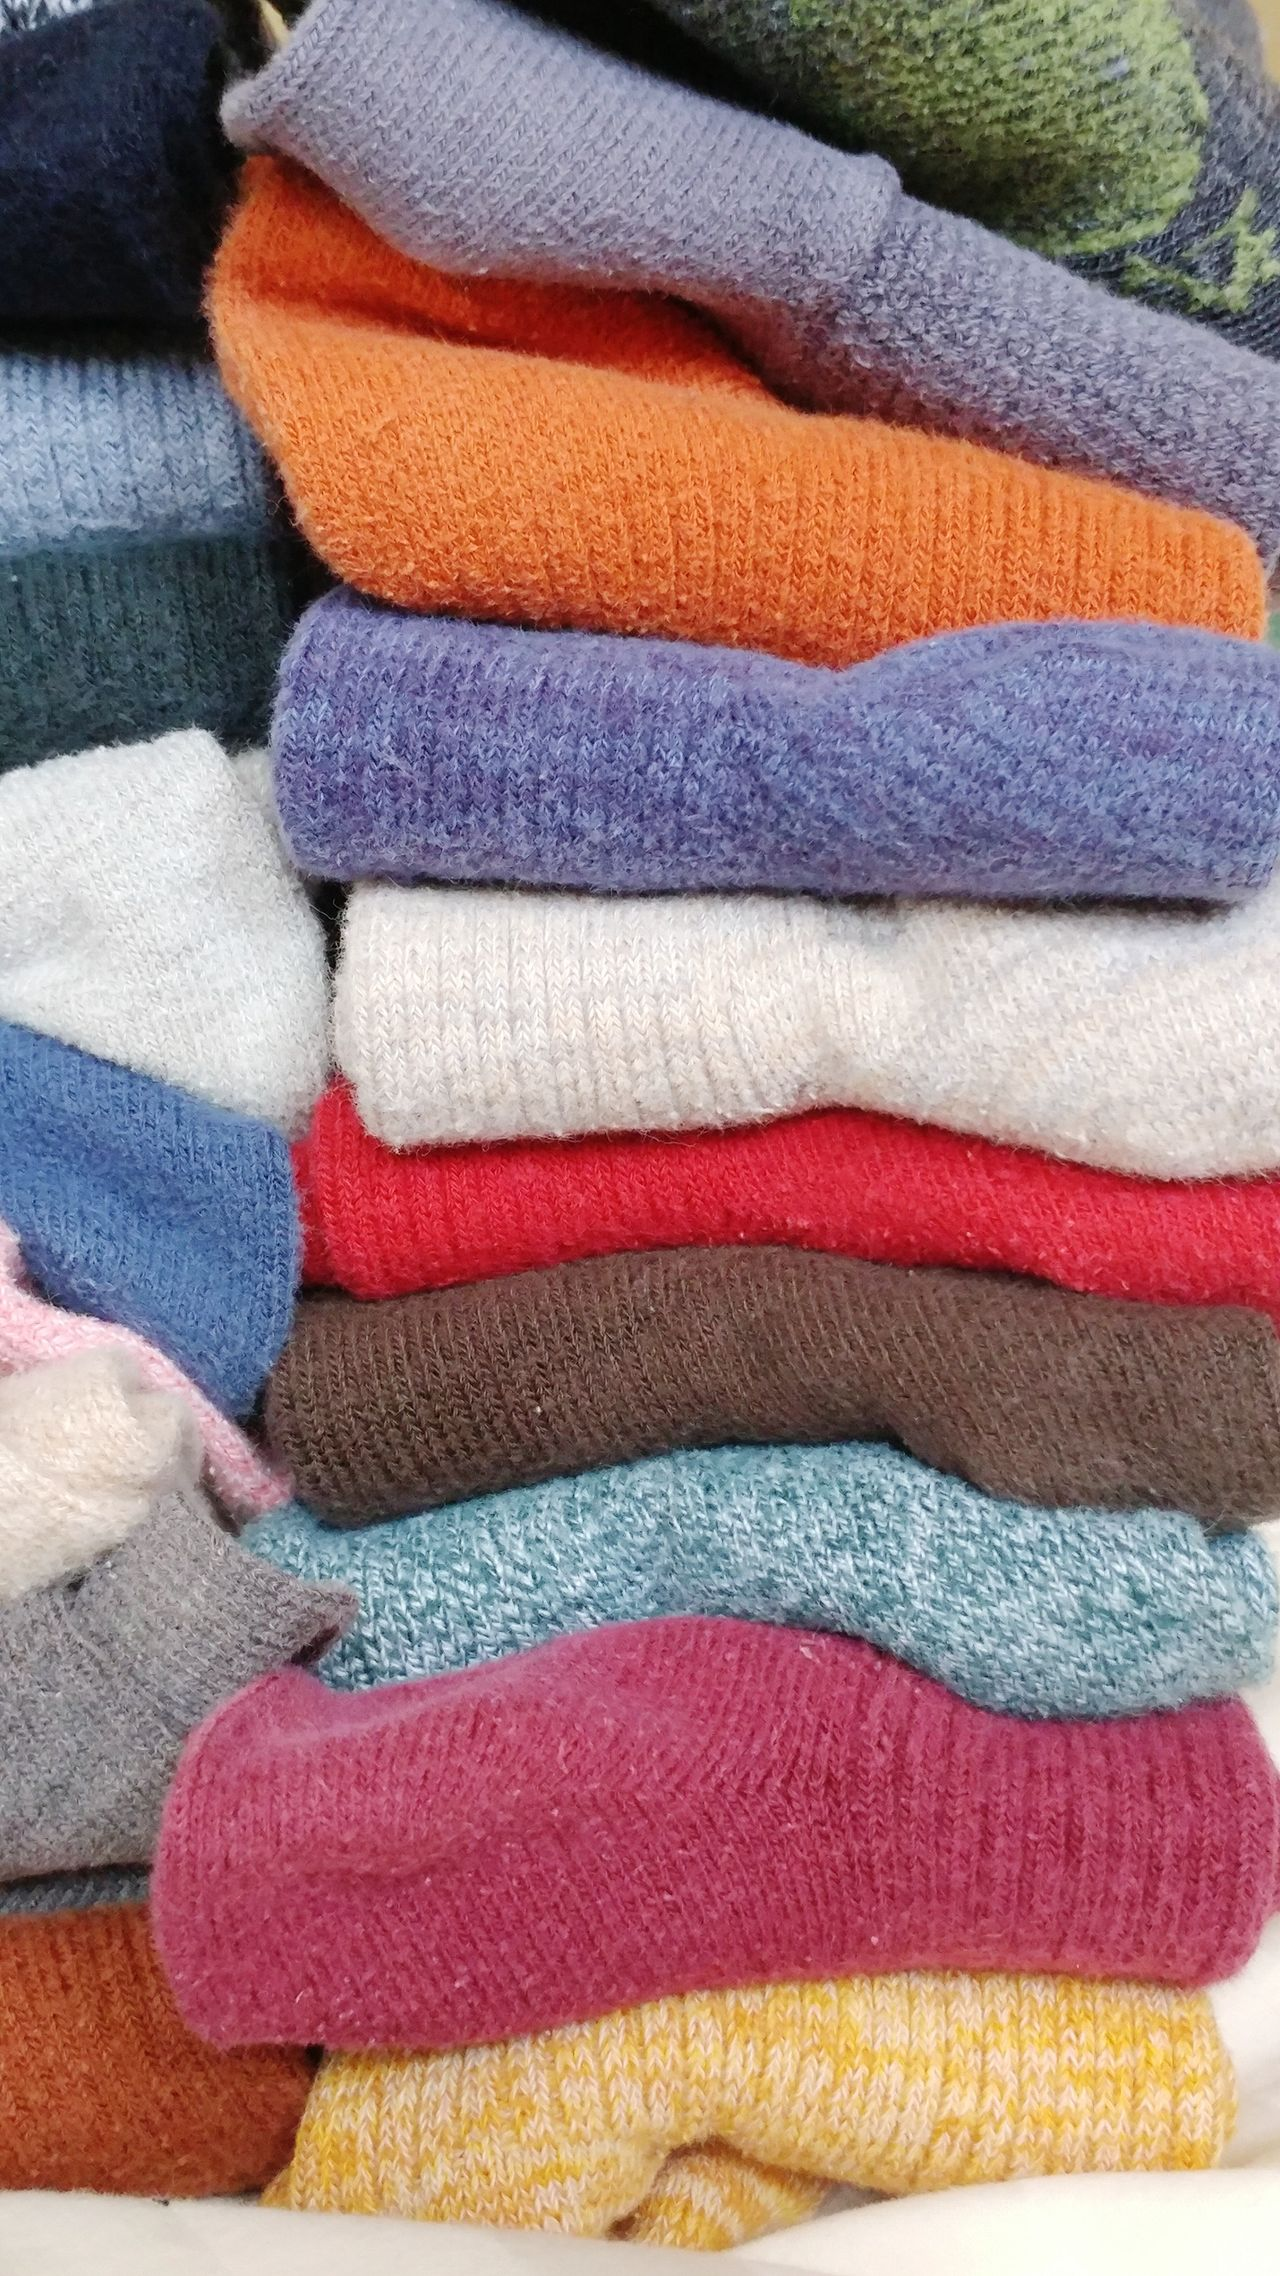 Stacks on stacks of socks. Multi Colored Stack No People Close-up Collections Organized Satisfying Underwear Shoot Clothing Textures And Colors Sun Bathing Rainbow Colors Warm Clothing Warm Cozy Socks Comfy  Backgrounds Style And Fashion